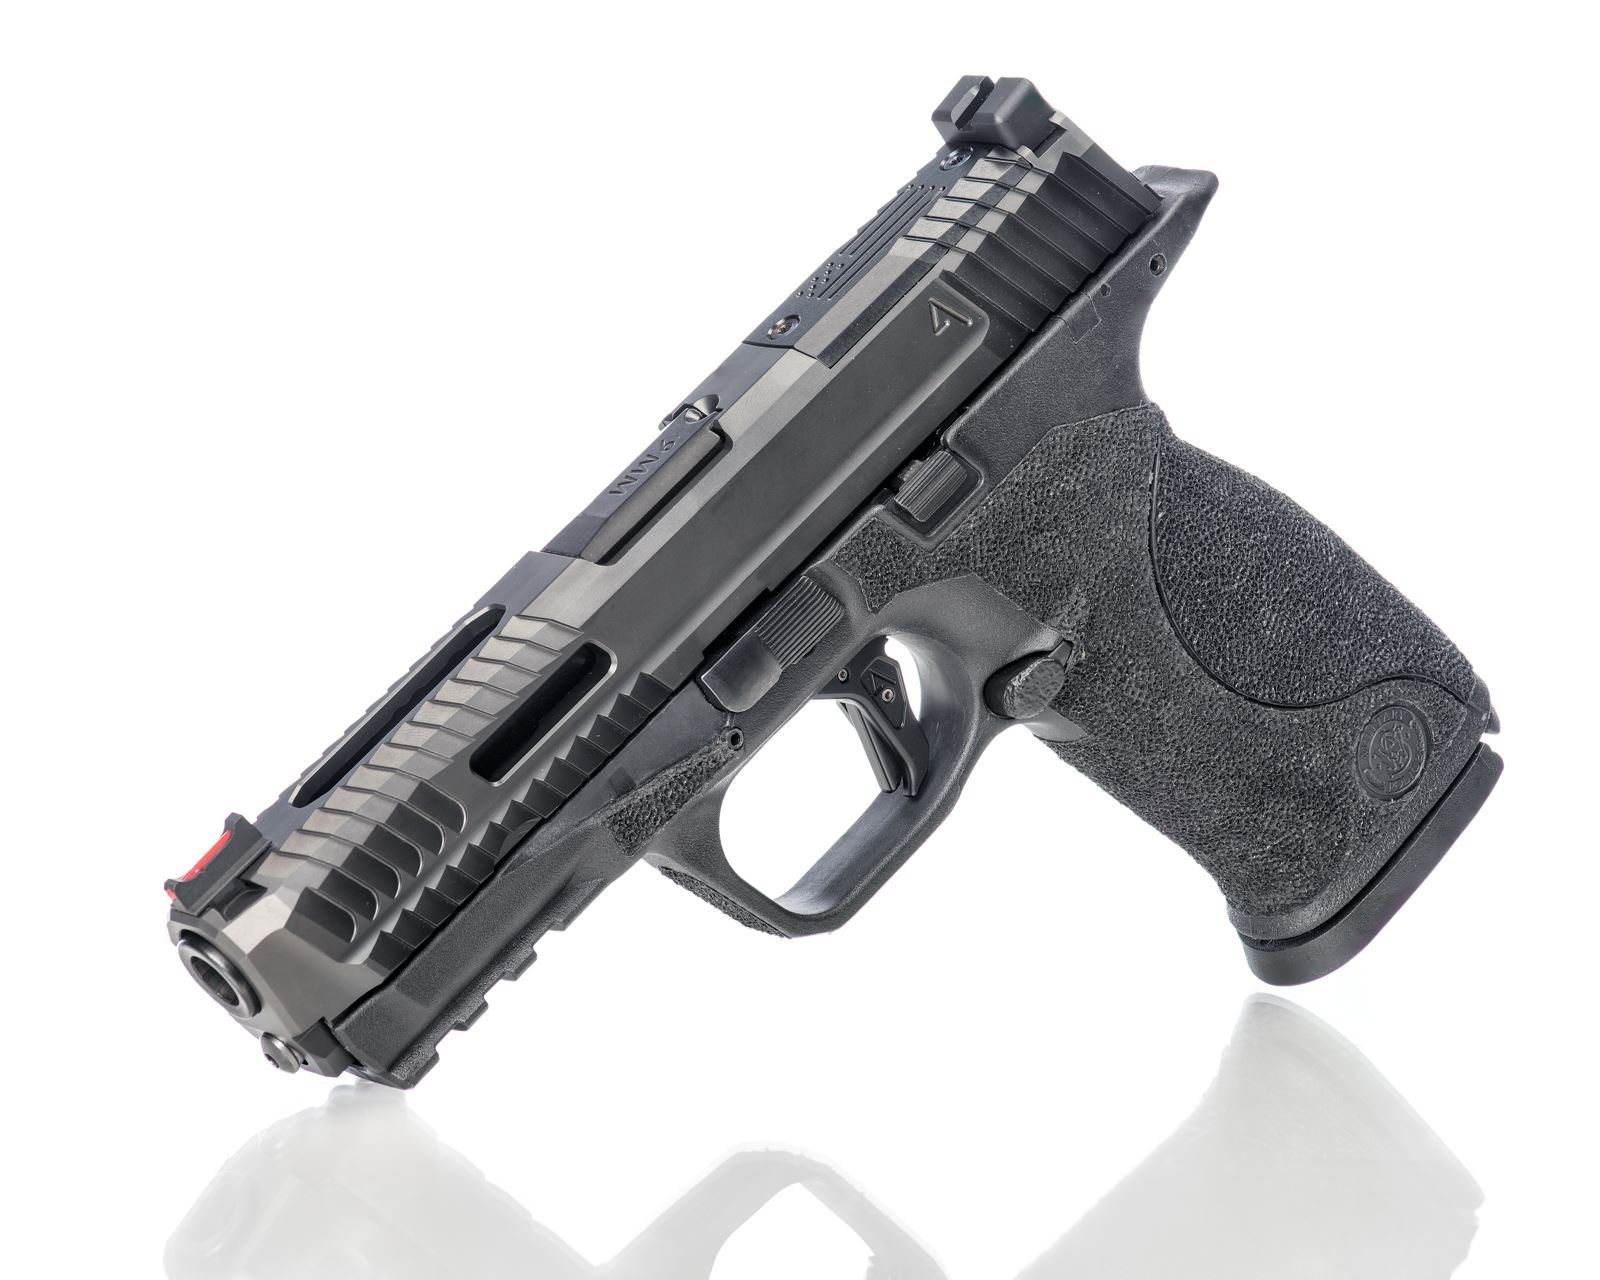 Complete Pistol Build (M&P) - Agency Arms | Welcome to the